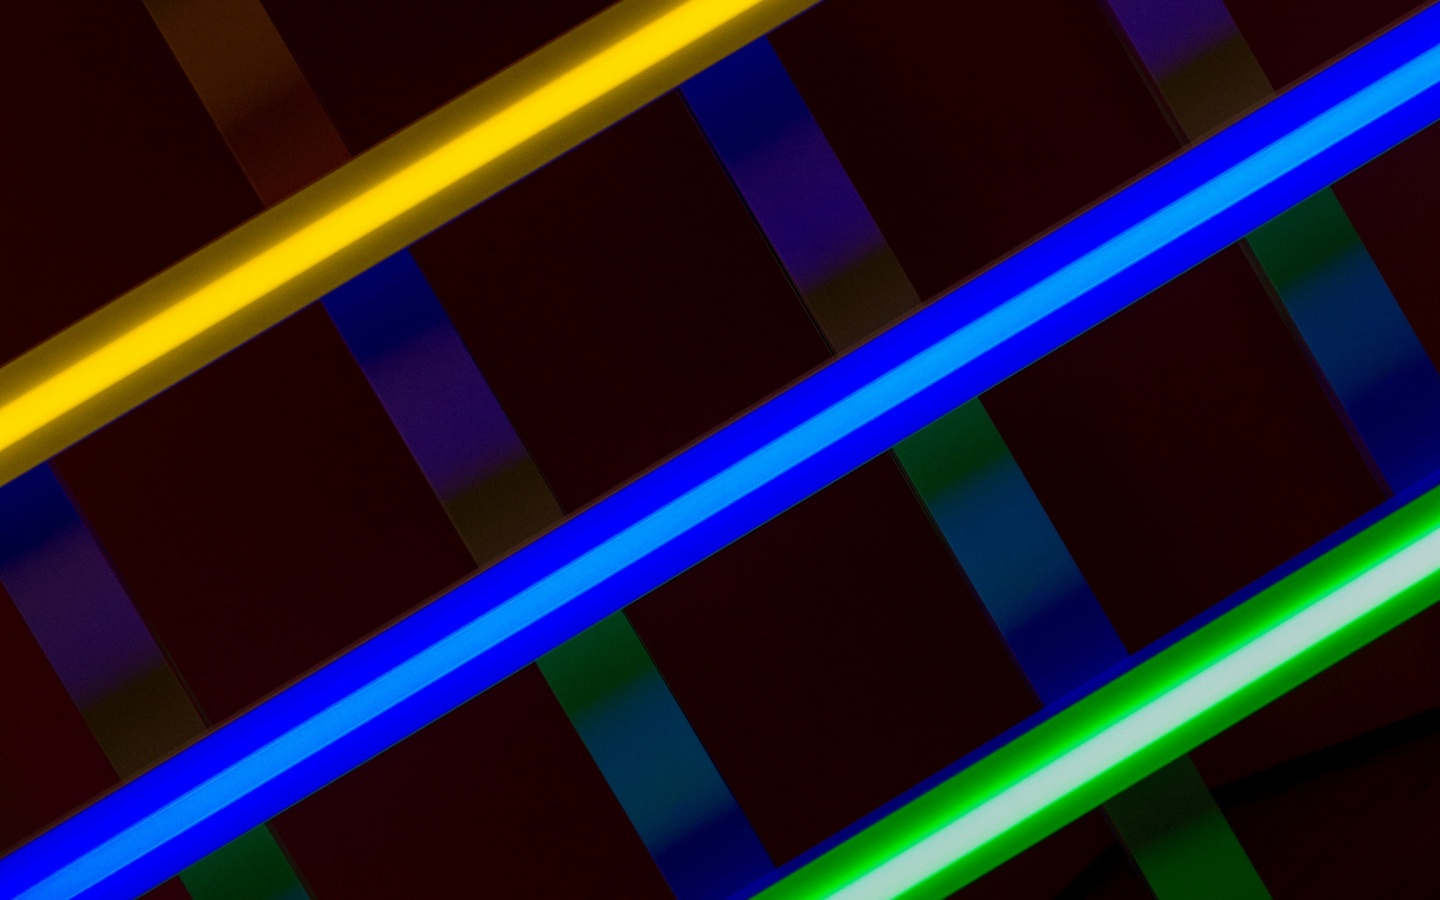 lines-diagonally-multicolored-wallpapers_54867_1440x900 Colored Lines